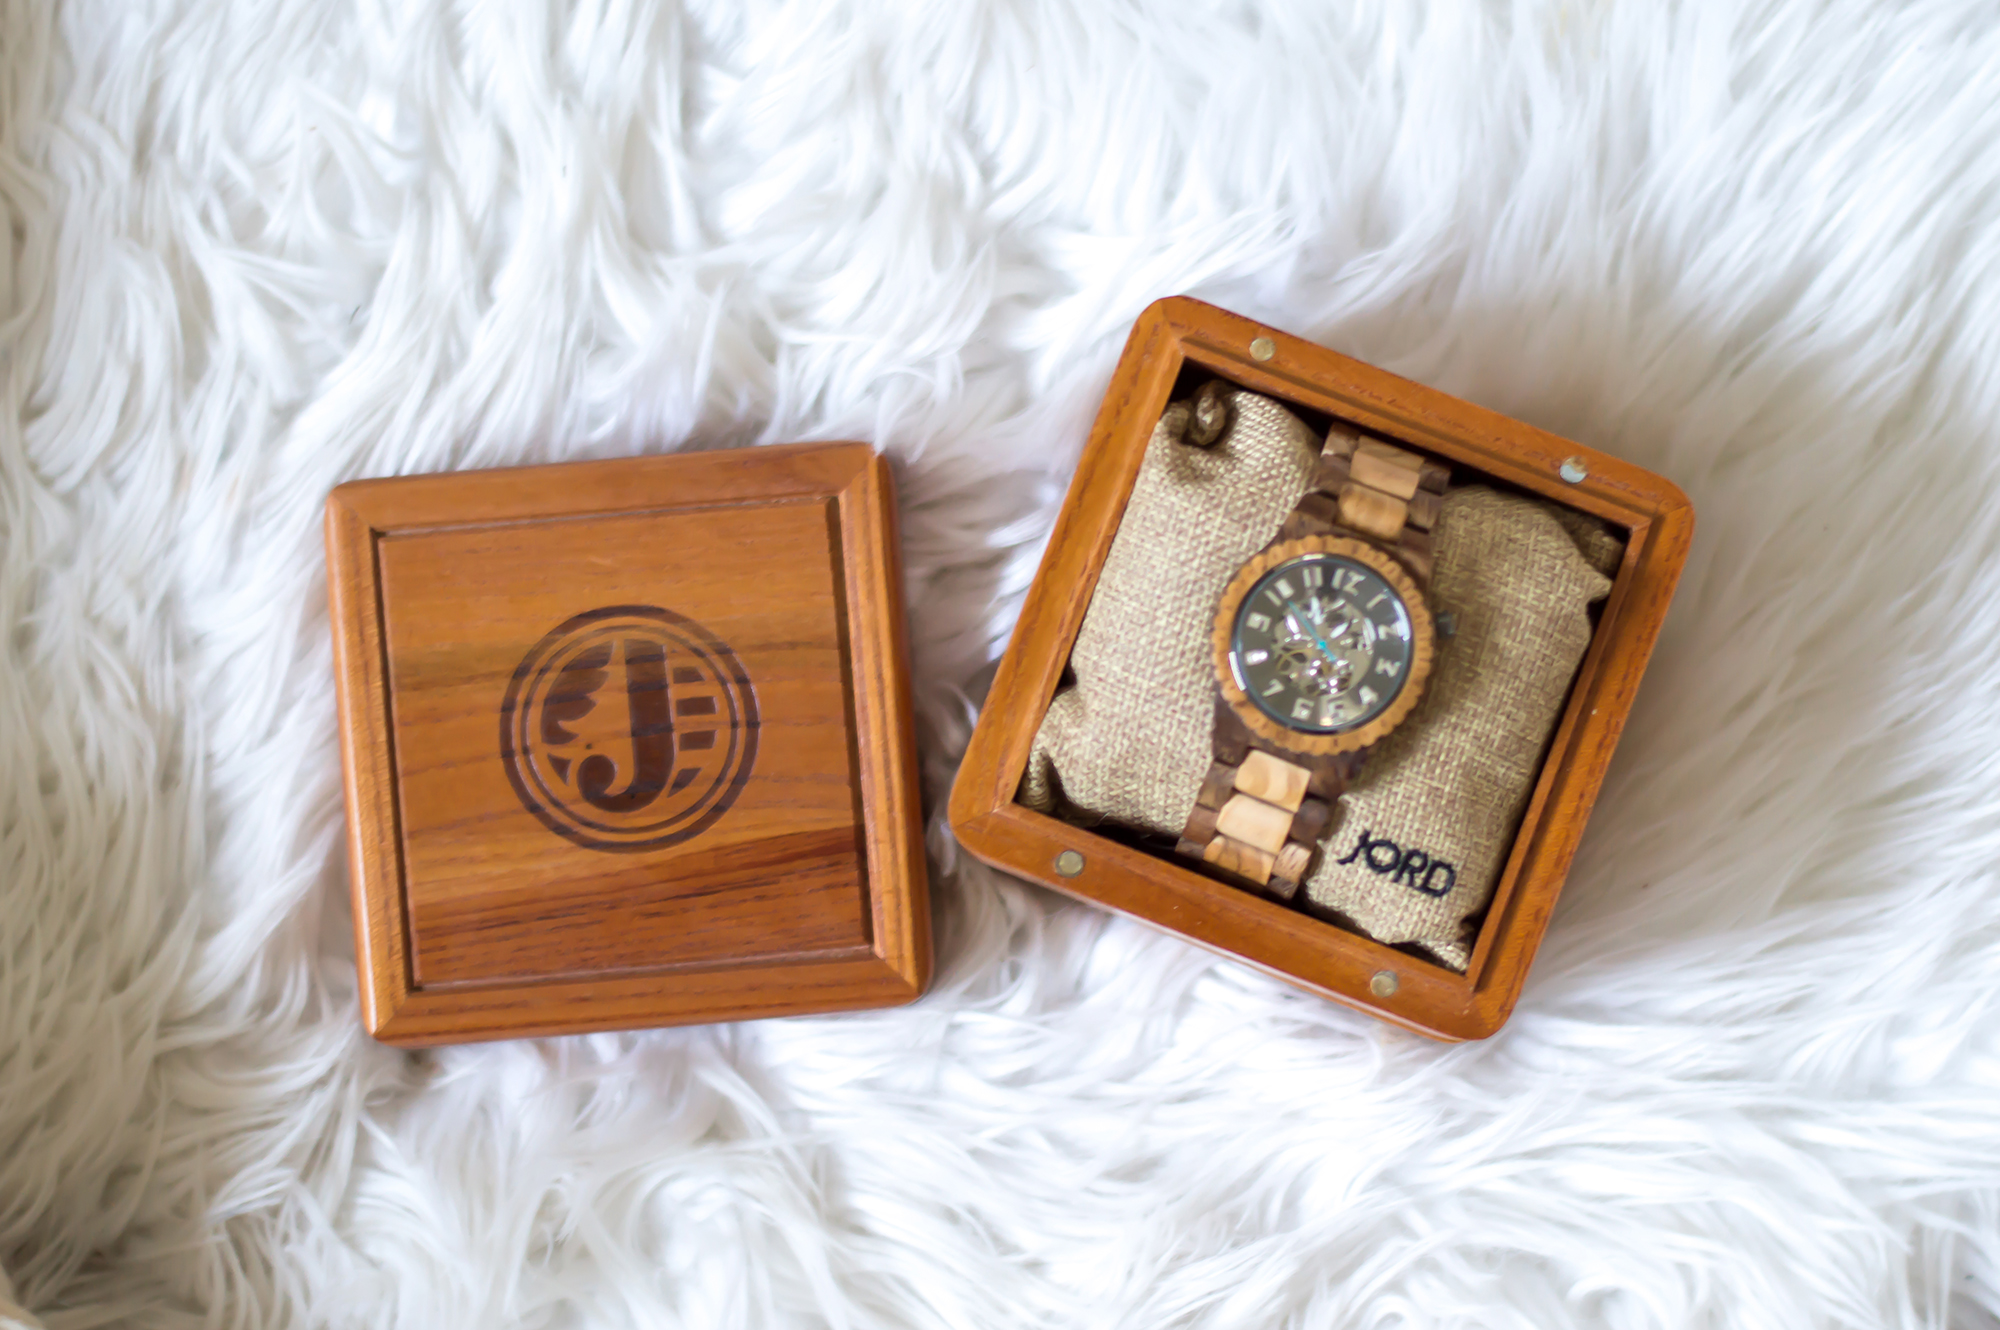 styelled-elle-elisabeth-fashion-style-blogger-jord-wood-watches-luxury-watch-dover-series-valentines-day-for-him-ootd-australian-labradoodle-09